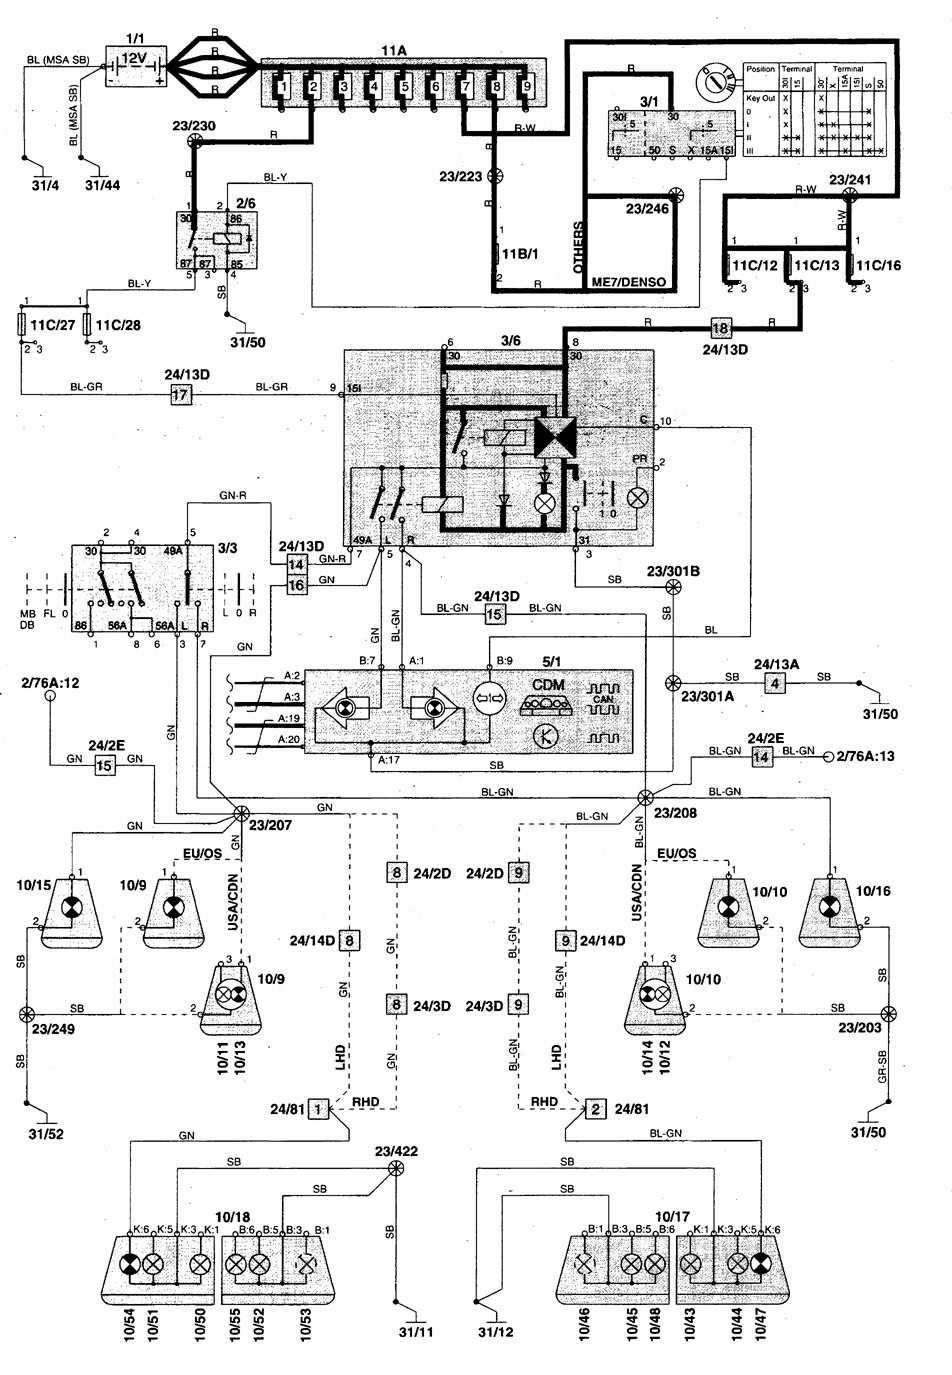 1996 Volvo 850 Radio Wiring Diagram from www.carknowledge.info